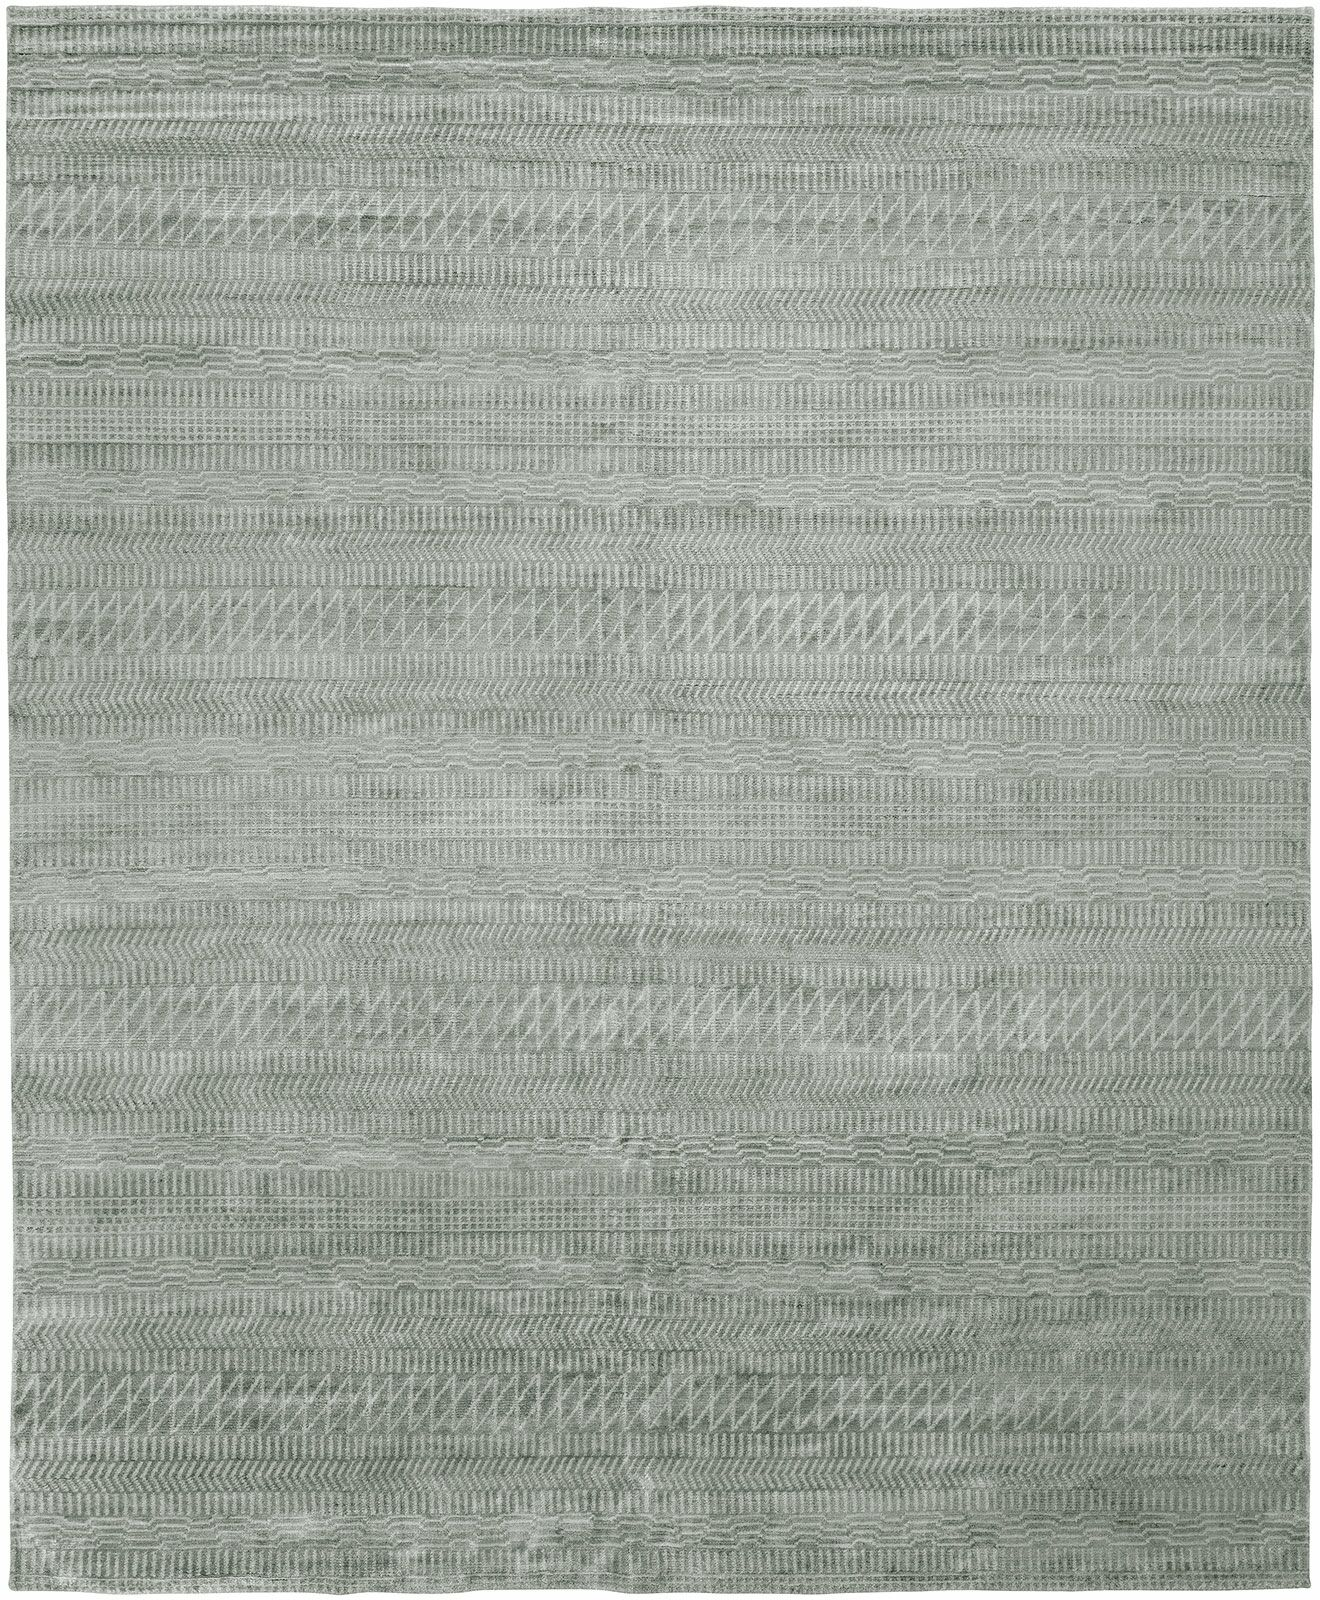 Heacock Hand-Knotted Wool Gray Area Rug Rug Size: Rectangle 8' x 10'